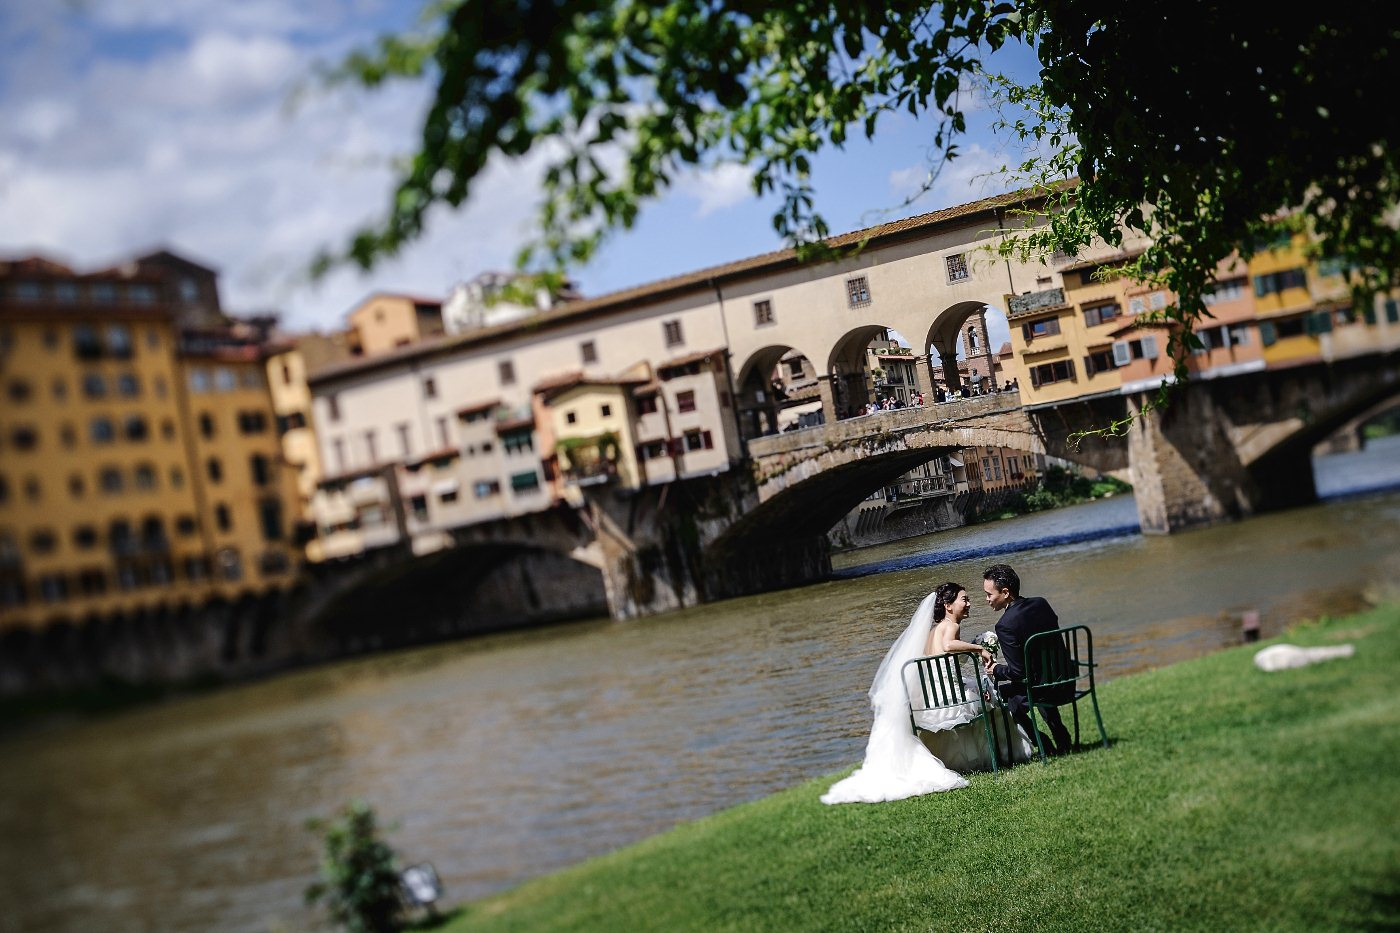 wedding photo tuscany_12.jpg